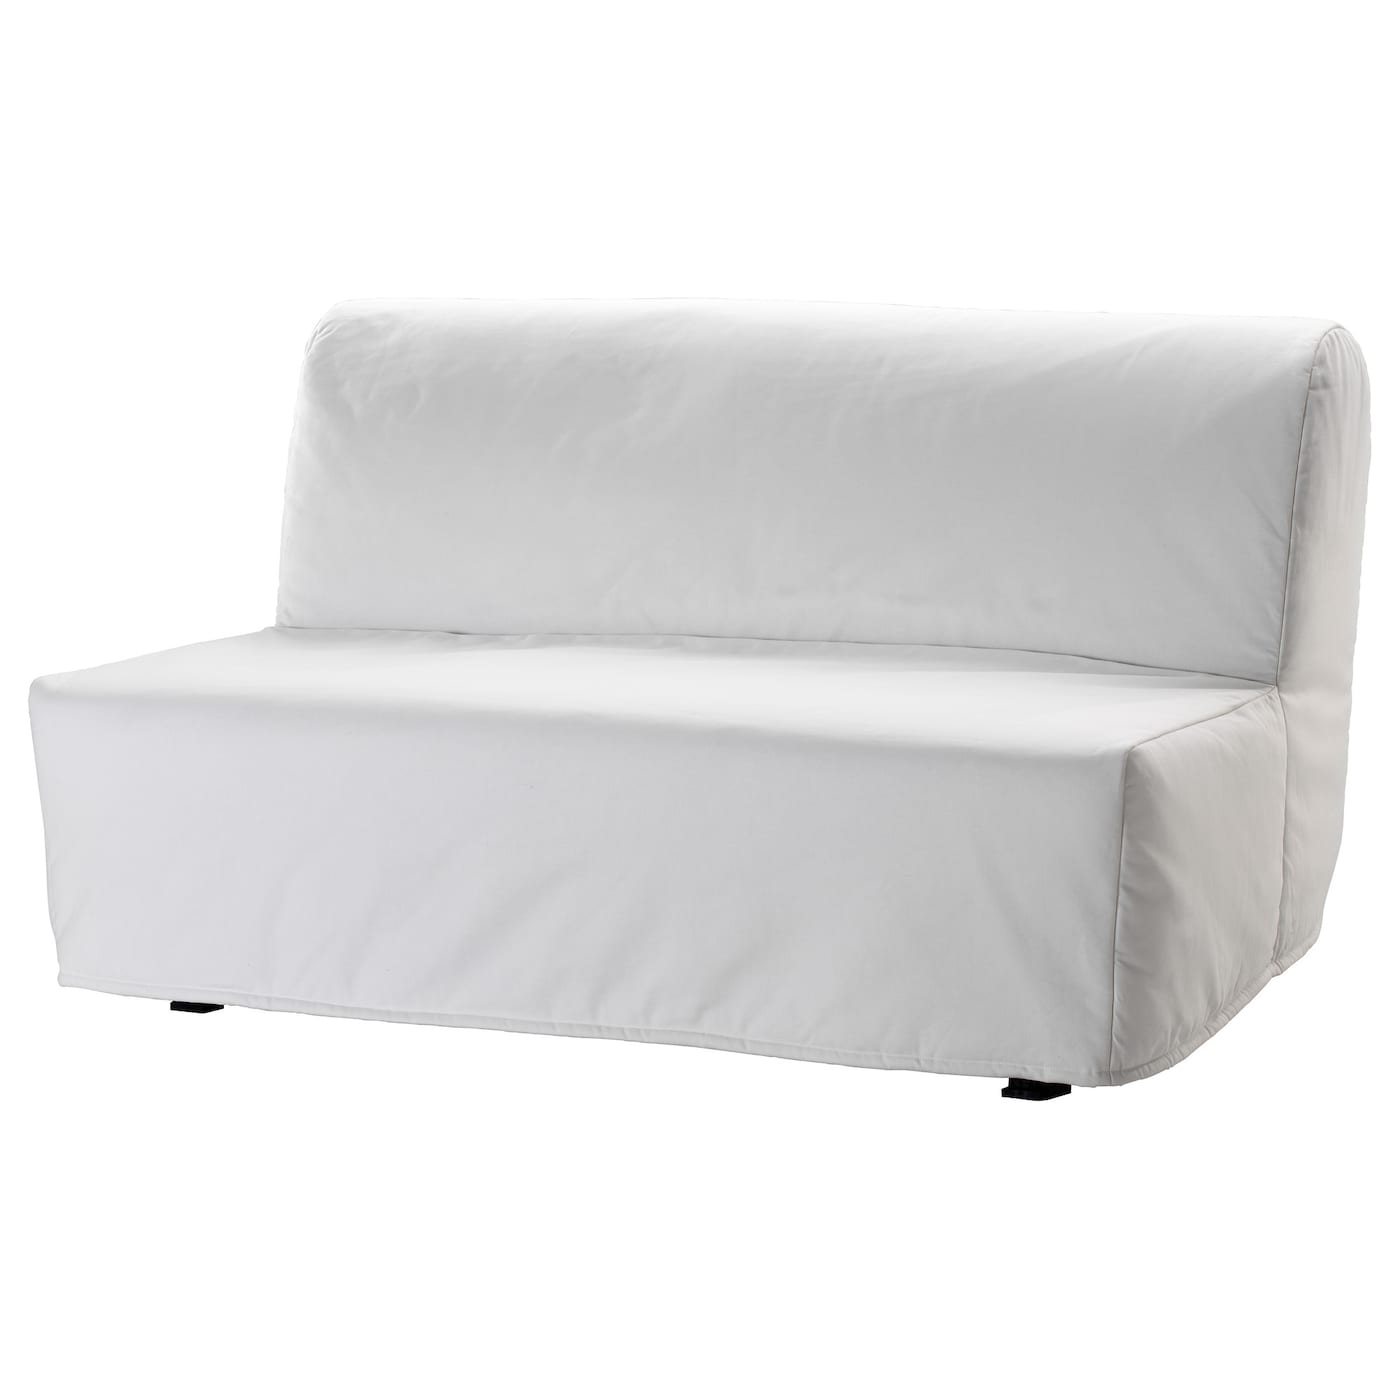 Two Seat Sofa Bed Cover